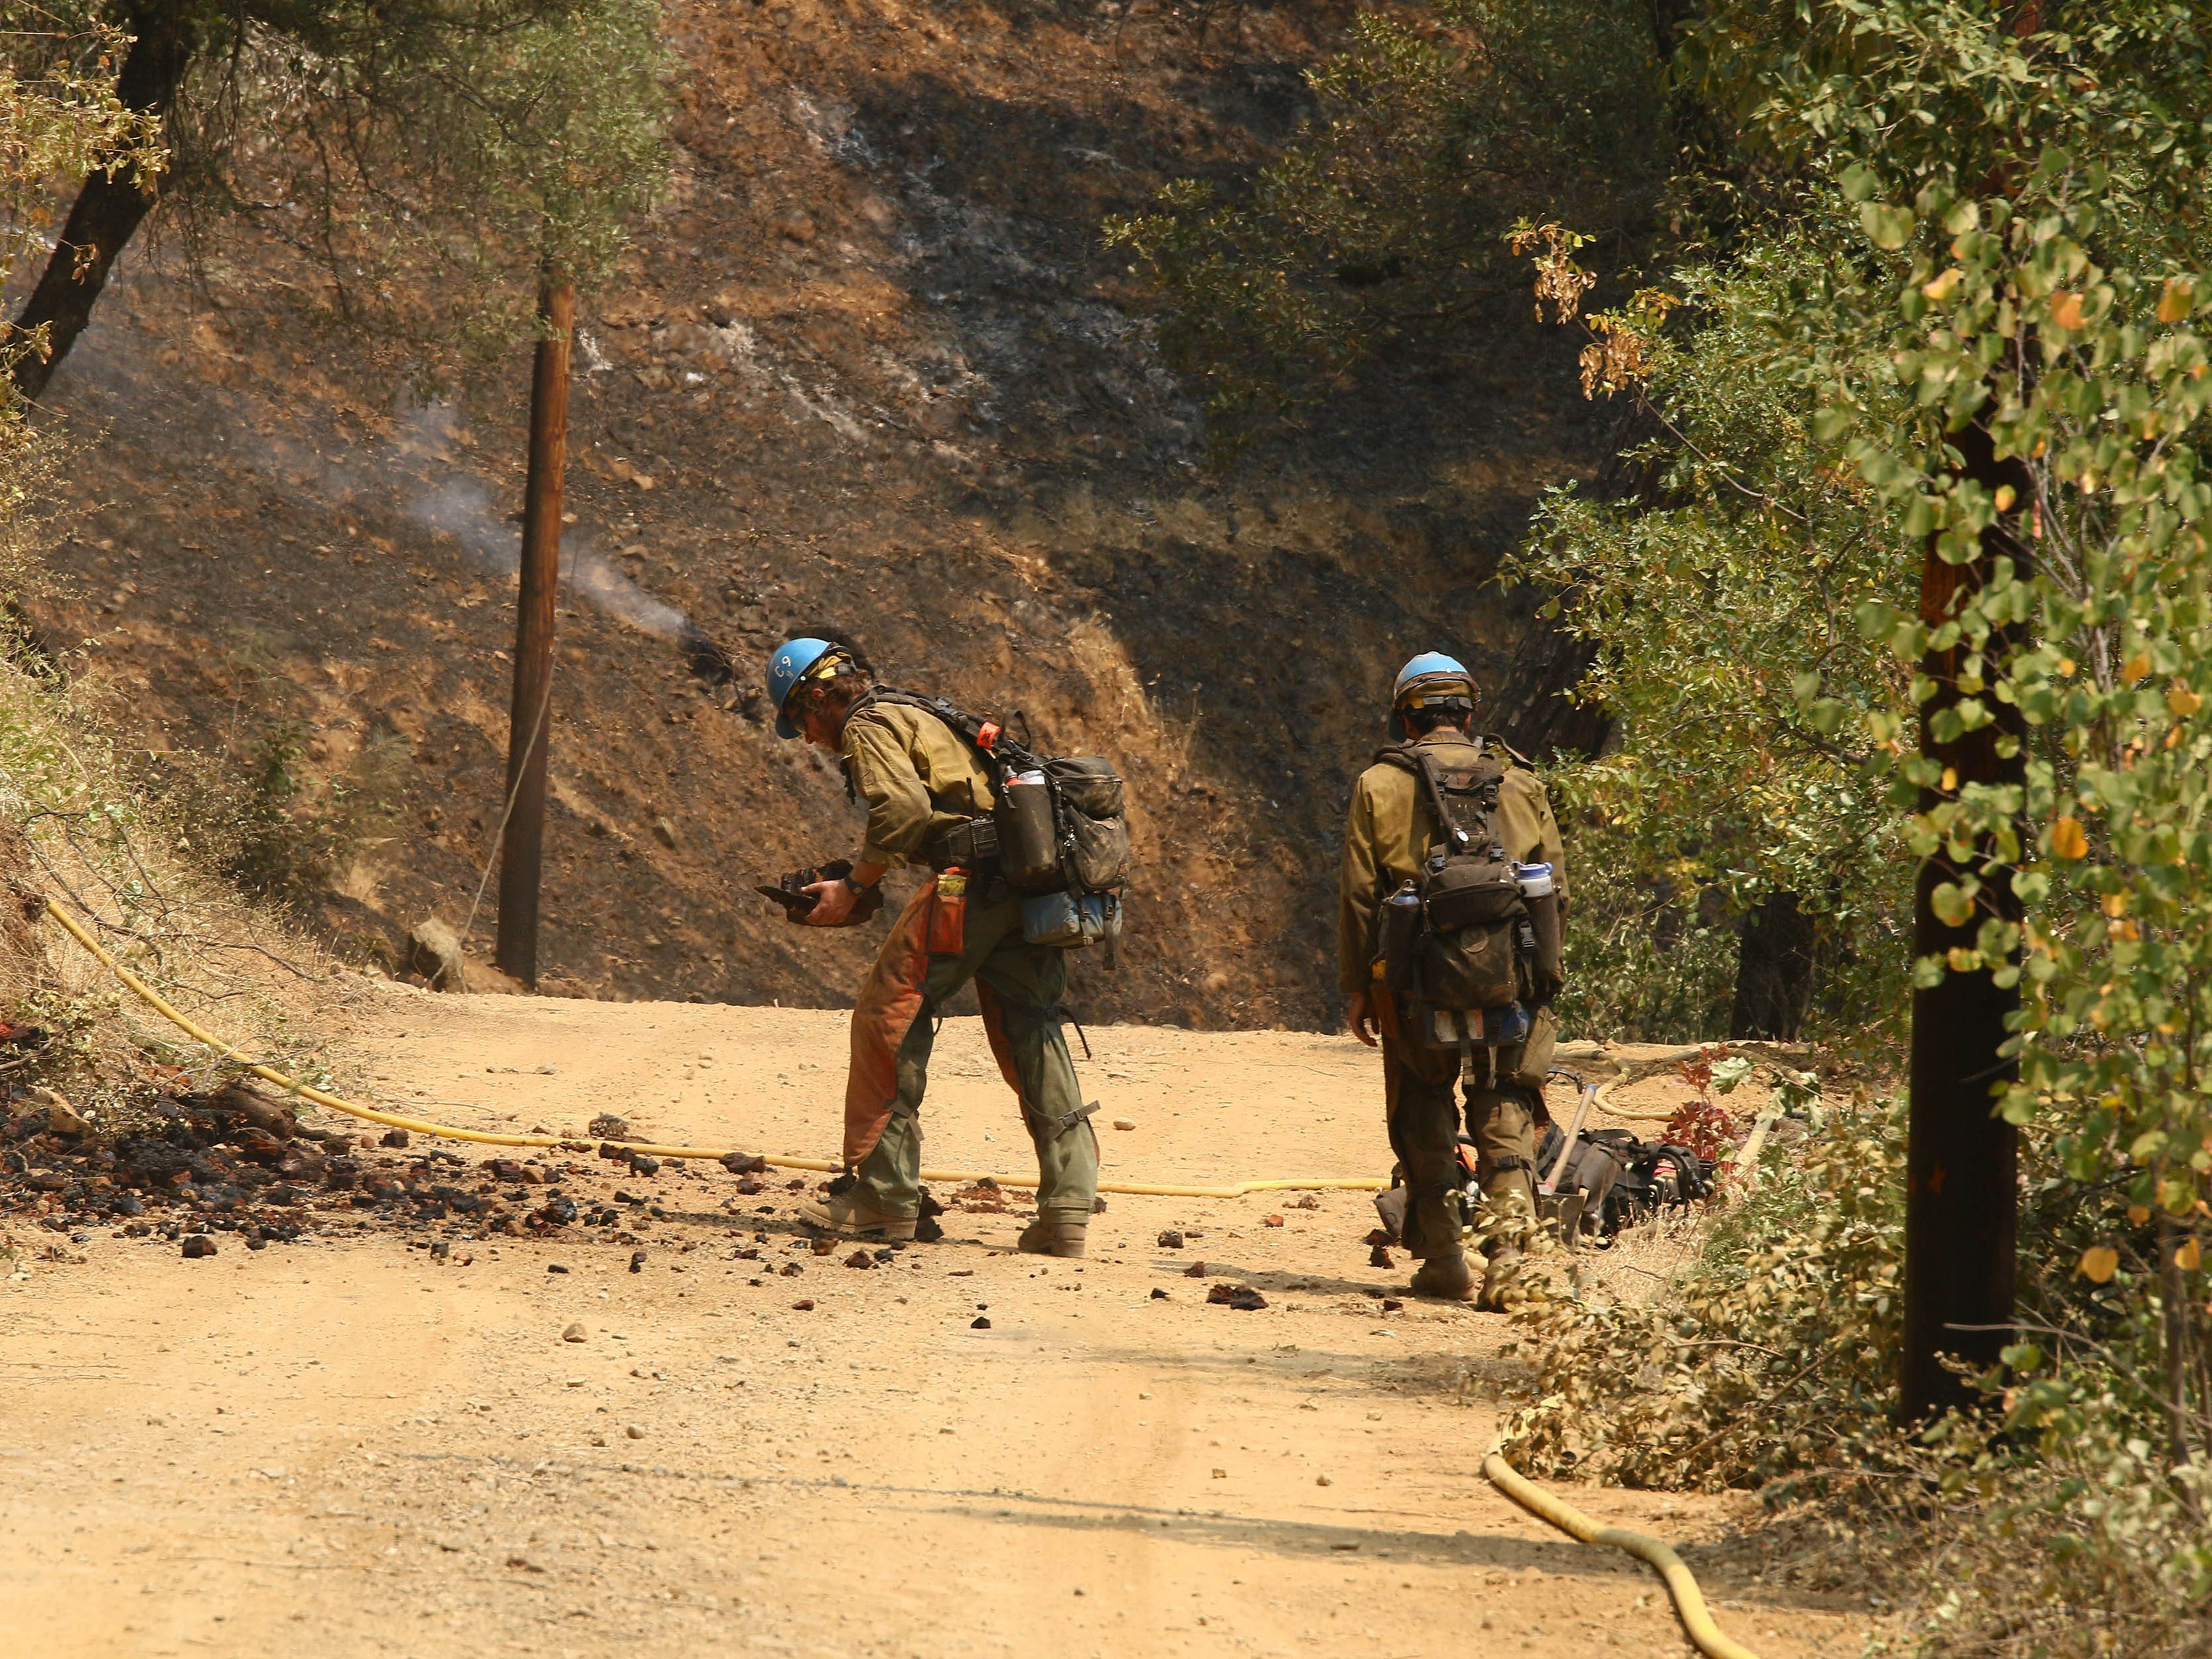 A hotshot crew picks up some ember on the road near Bollibokka Club along the McCloud River on Saturday, Aug. 18, 2018 at the Hirz Fire. (Special to the Record Searchlight/Hung T. Vu)